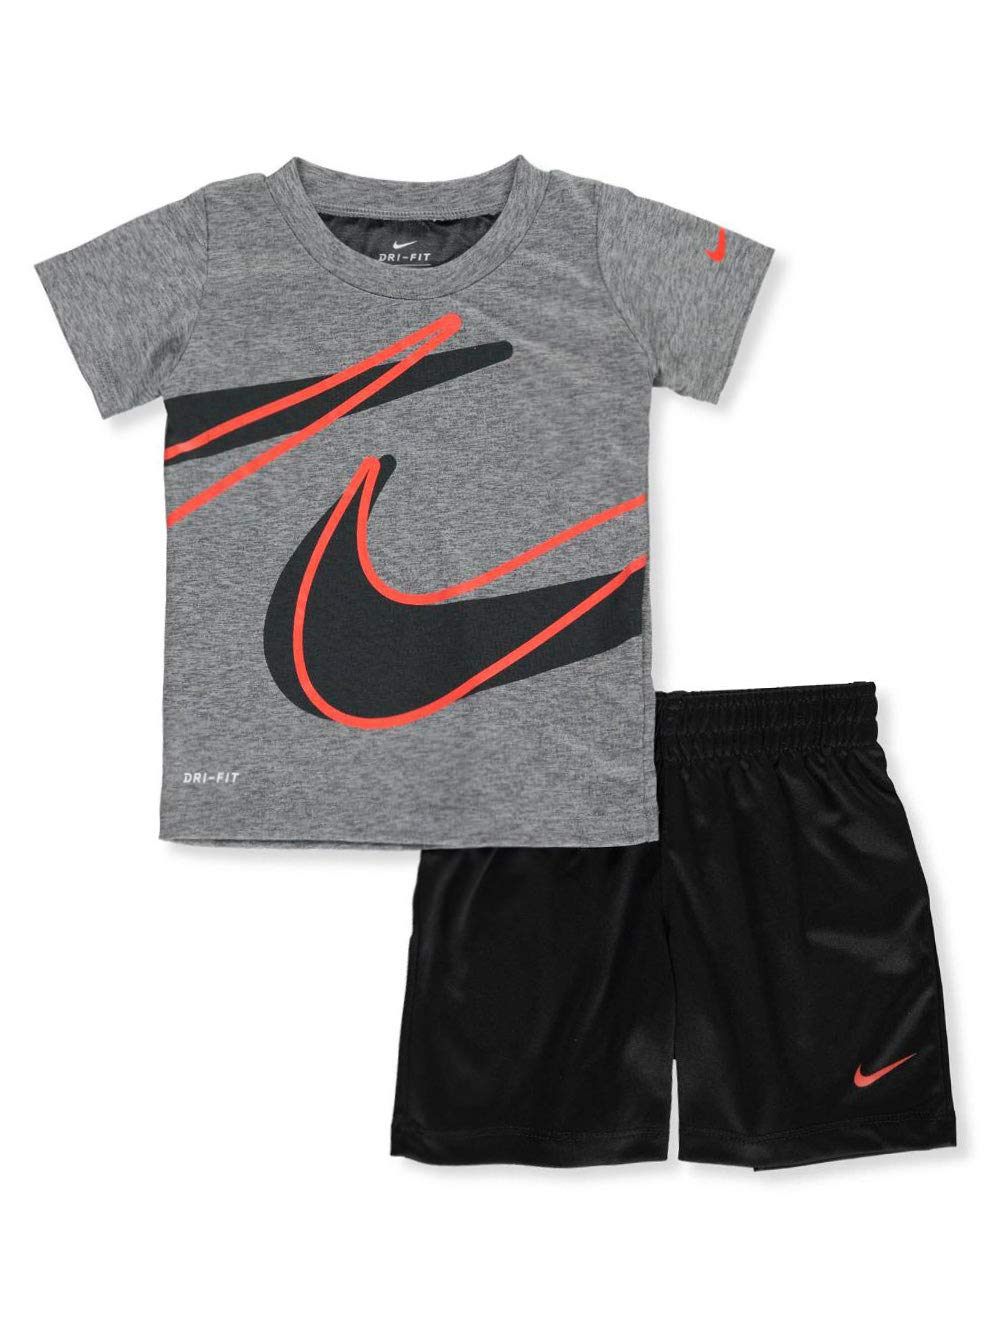 Nike Baby Boys' Dri-Fit 2-Piece Shorts Set Outfit - Black(76E526-023)/Red, 12 Months